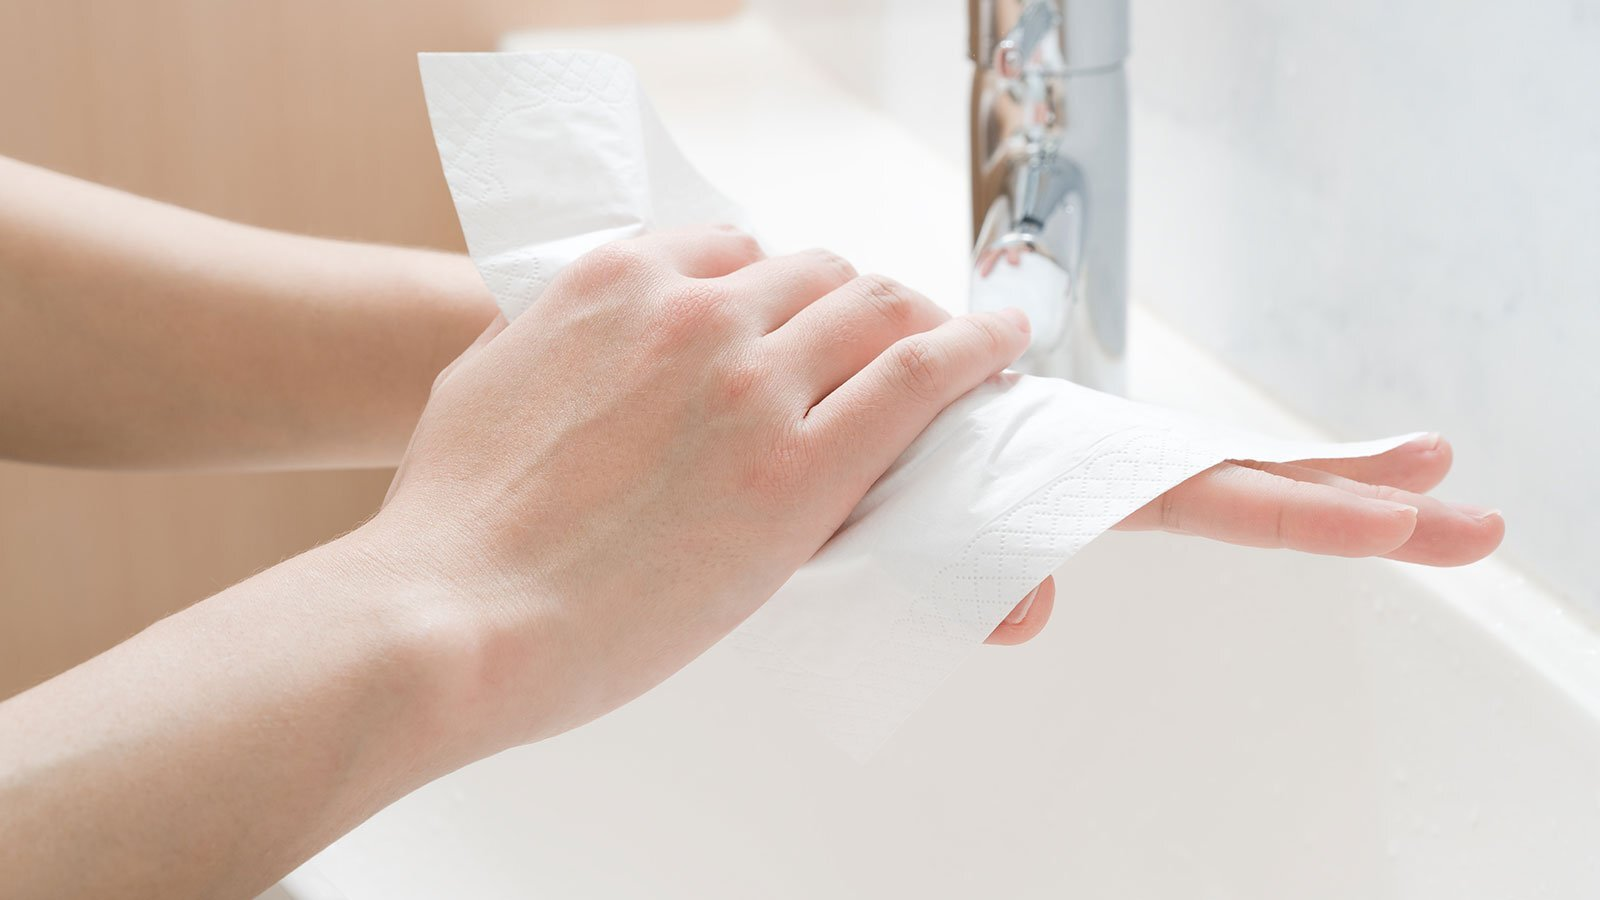 Hand Drying Facts